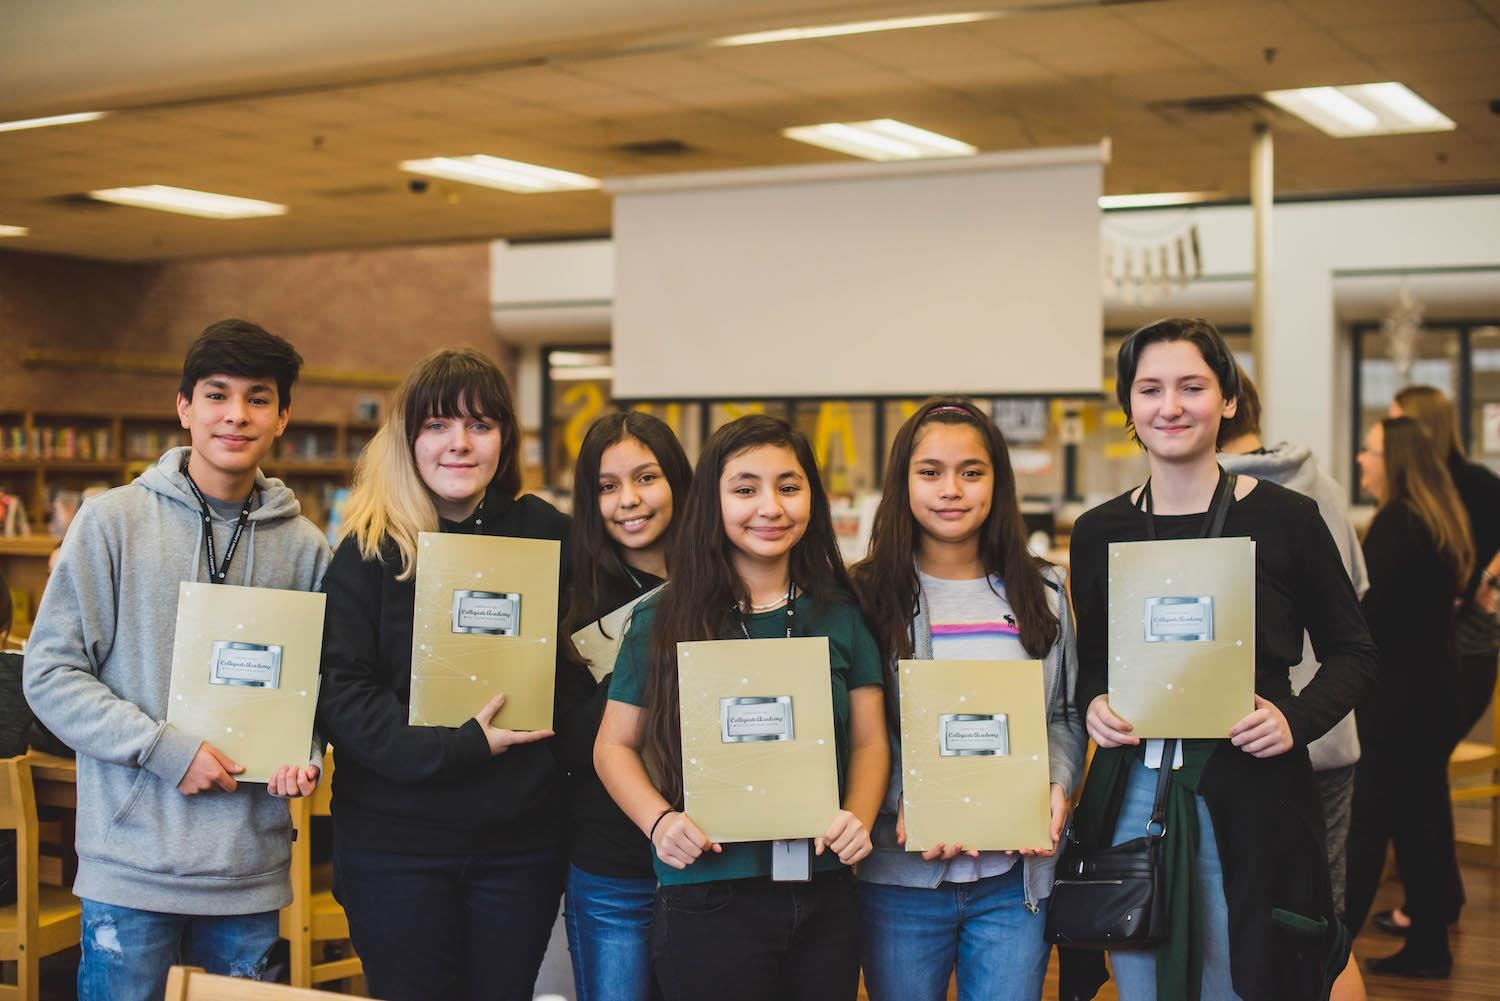 Students smile with collegiate academy folders